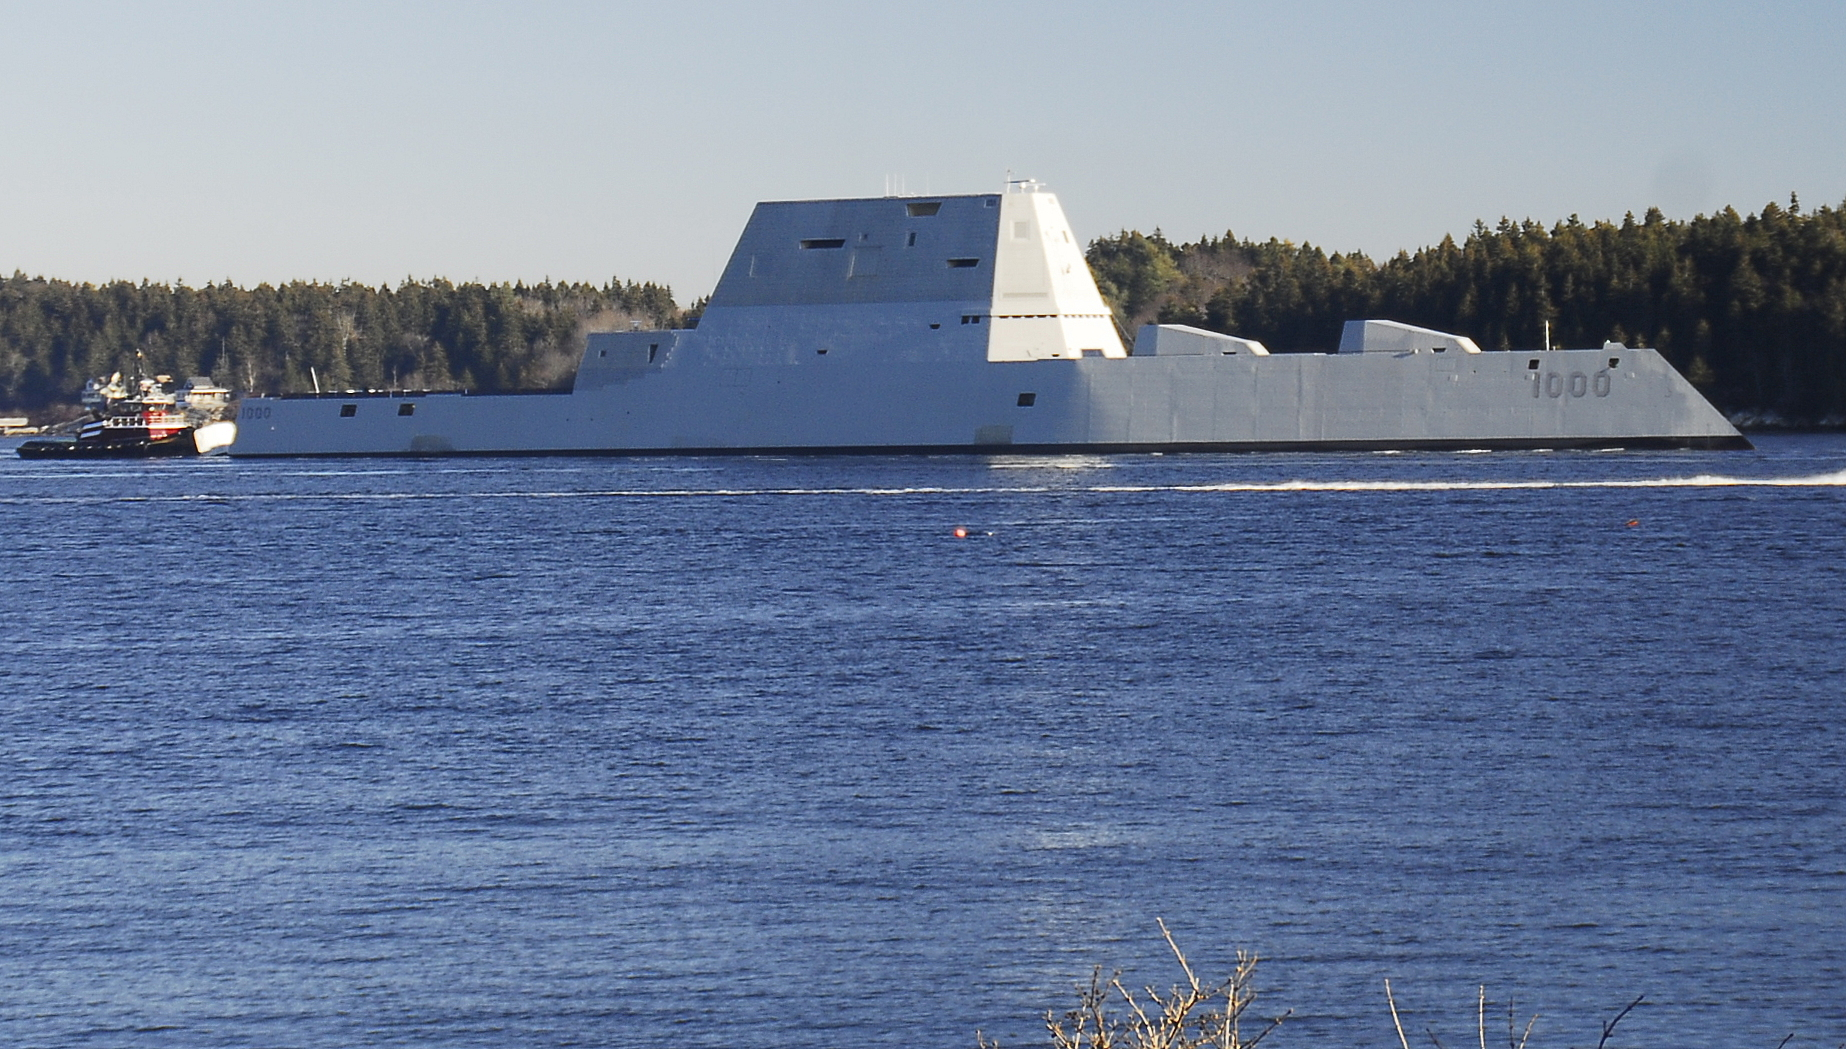 Navy has no plan to introduce new ammo for Zumwalt destroyers